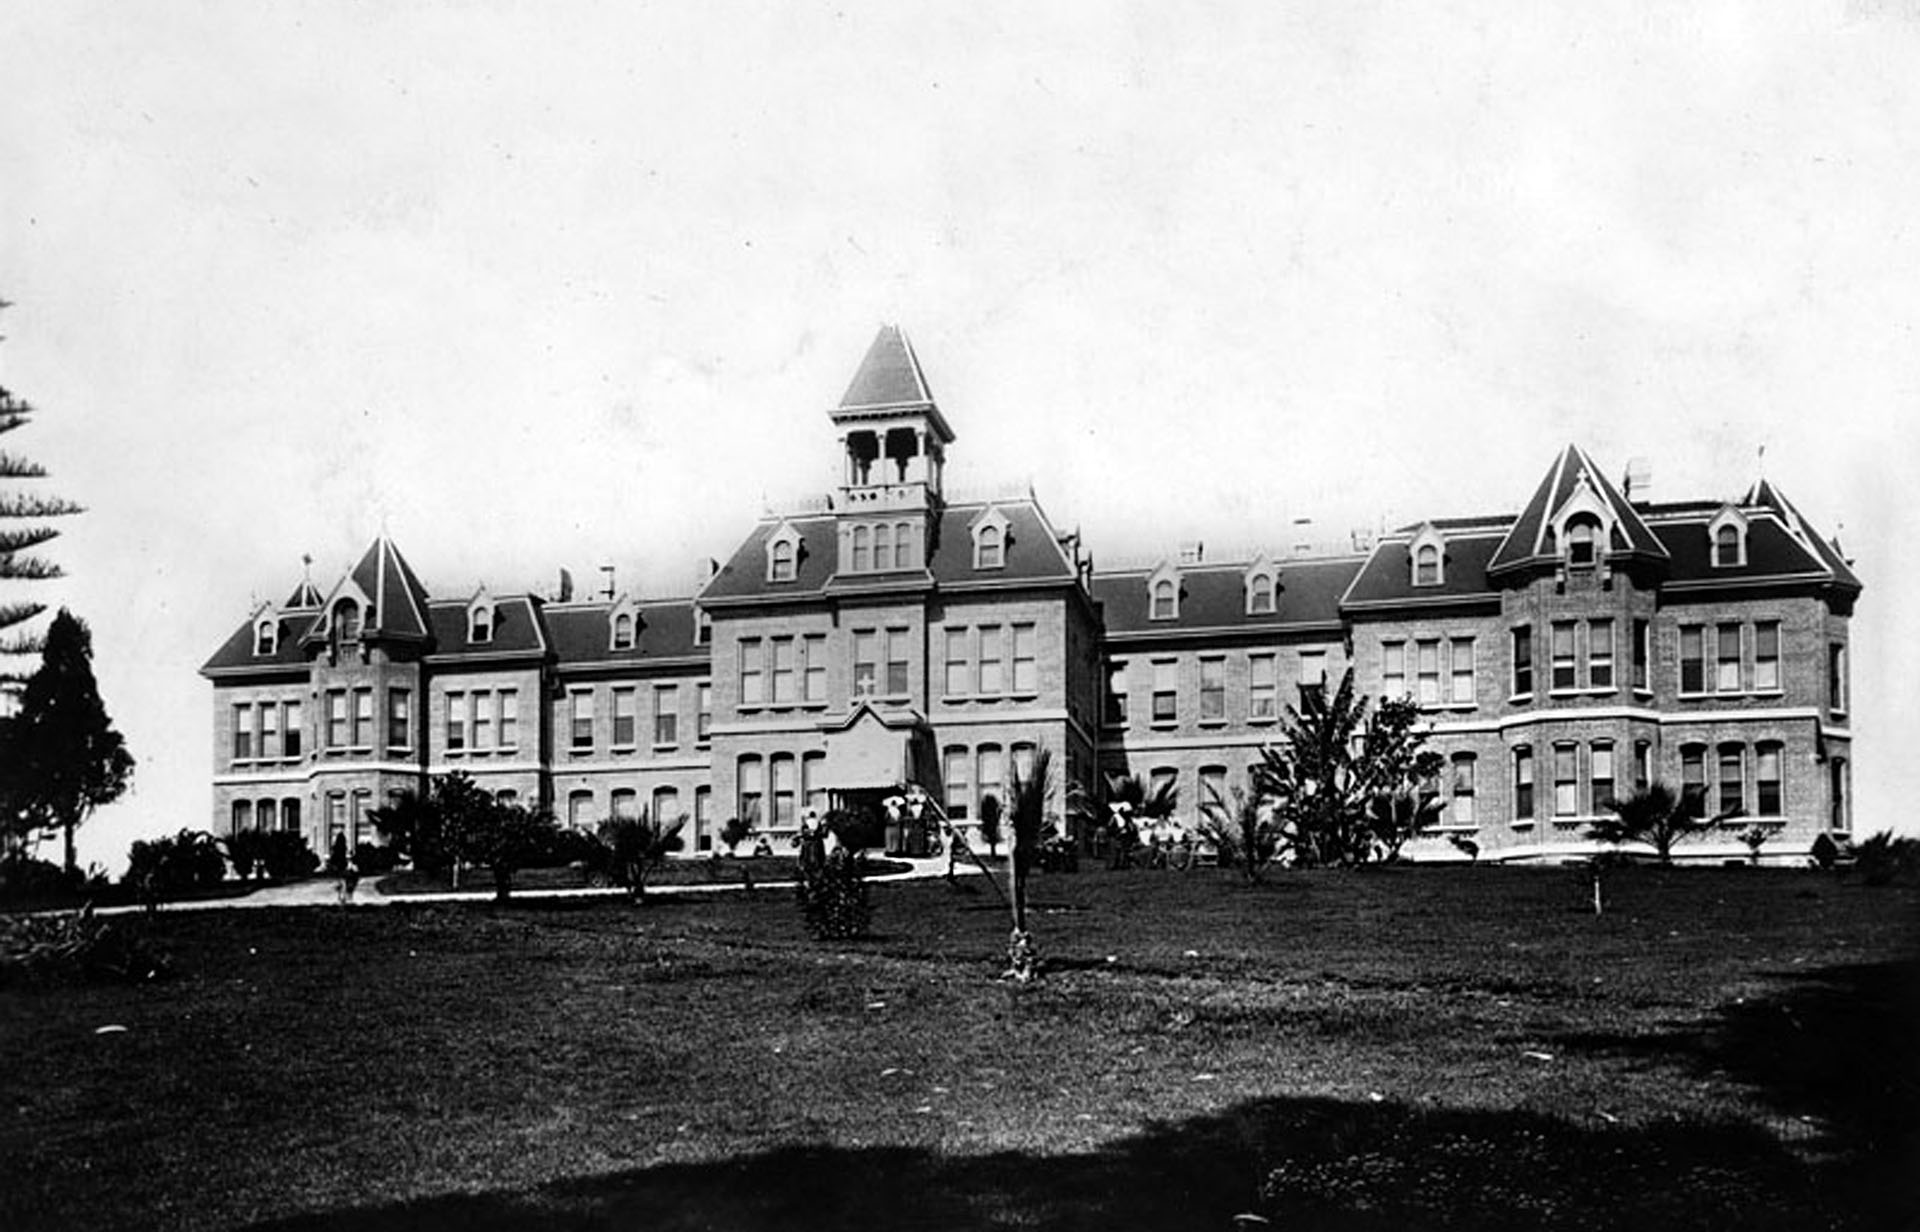 St. Vincent's Hospital, about 1900